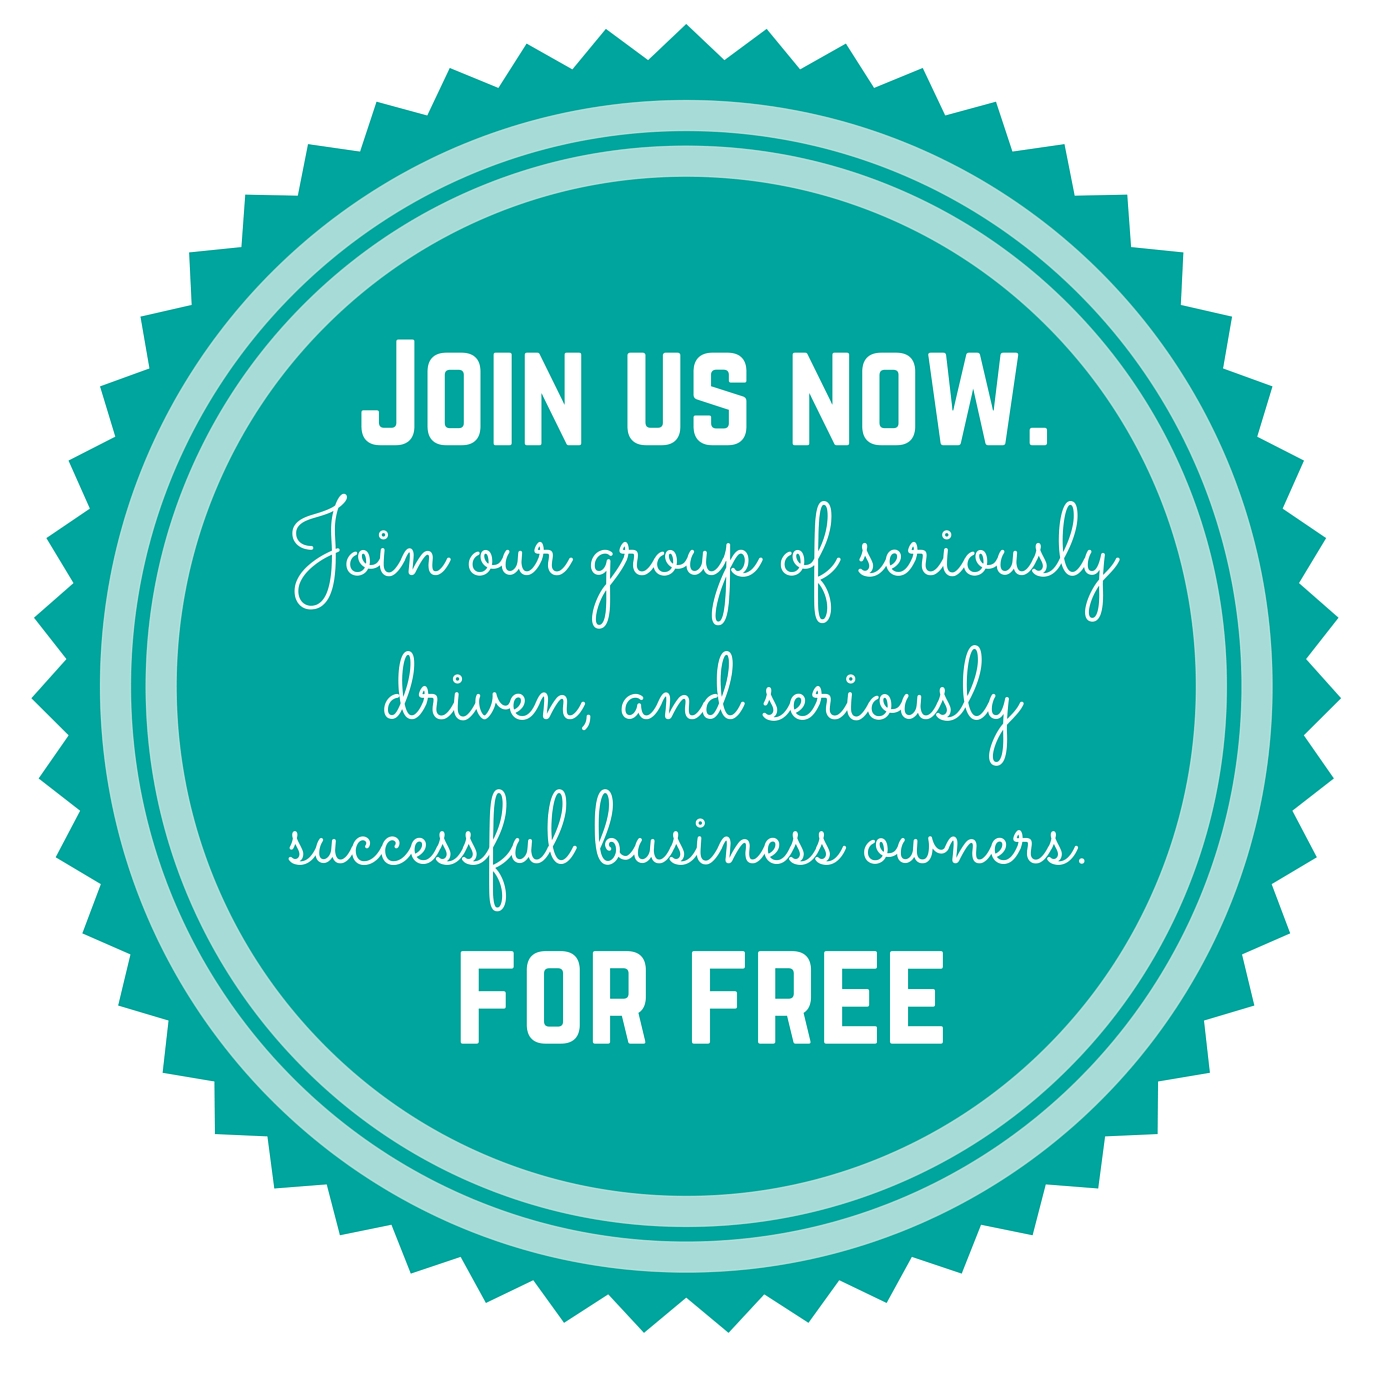 JOIN this growing group of seriously driven business owners. Now. for FREE.-3